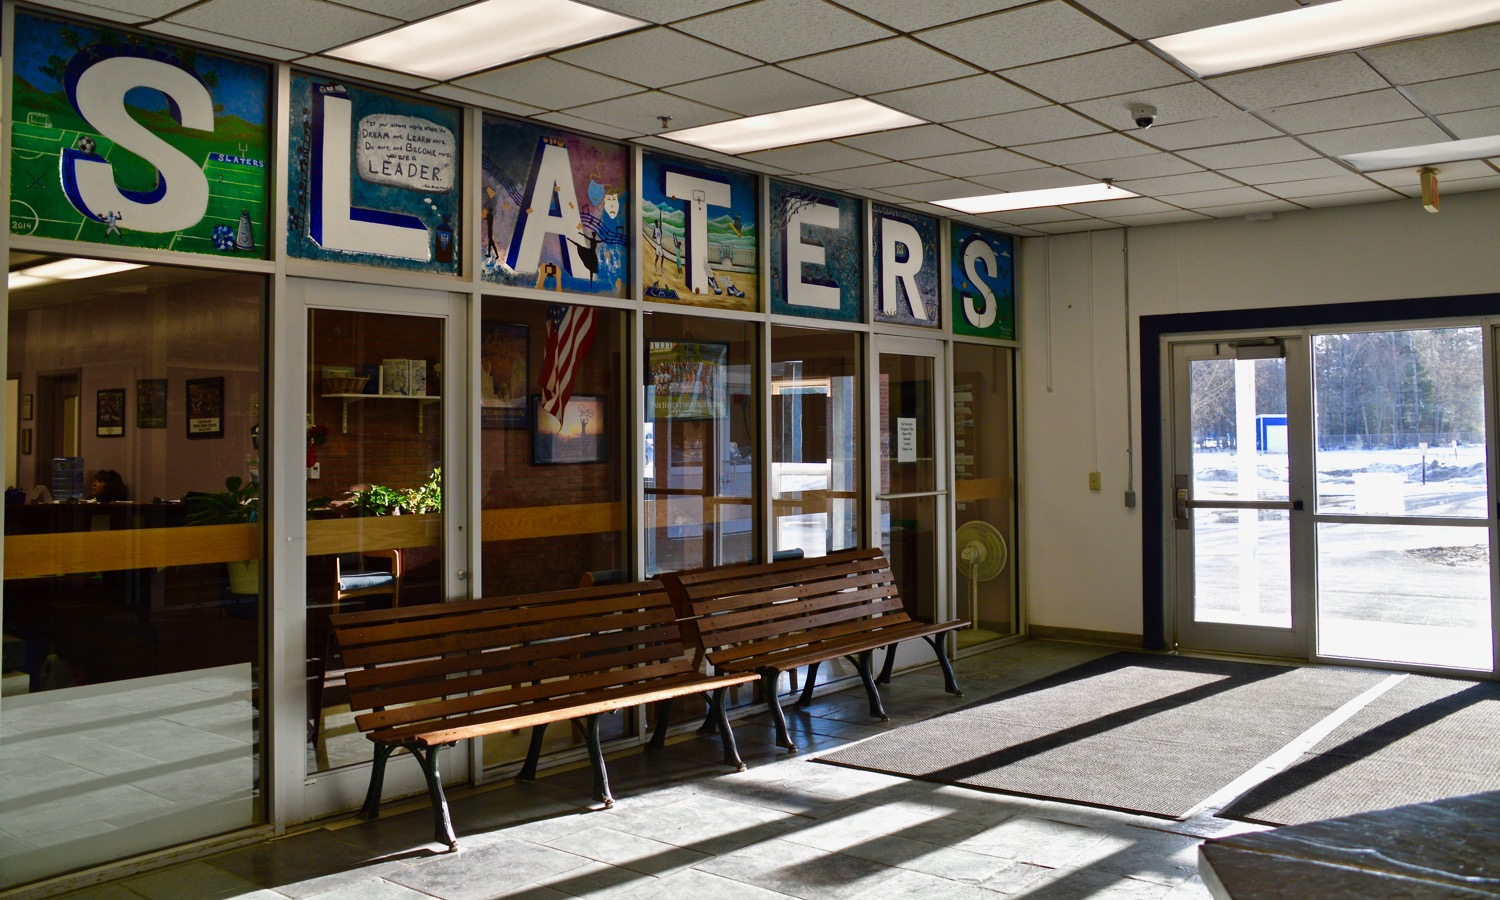 The entryway at Fair Haven Union High School in Vermont. Photo by Nina Keck for VPR